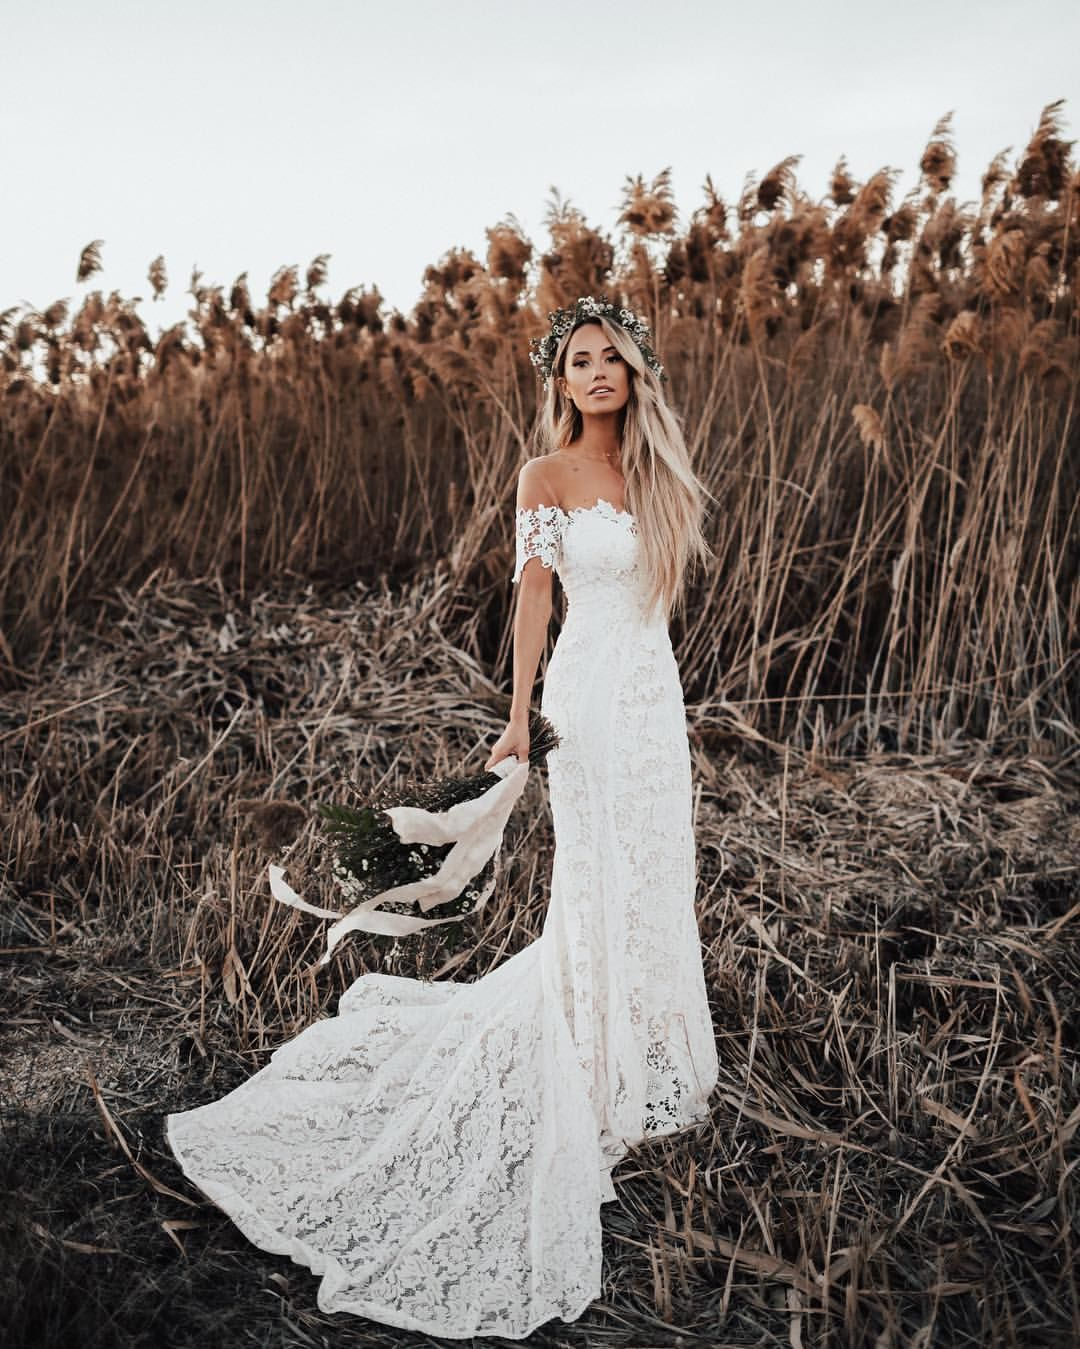 22 7k Likes 524 Comments M E G Style D Avenue Meg Legs On Instagram Starting Monday O Lace Beach Wedding Dress Lace Rustic Wedding Ivory Wedding Dress